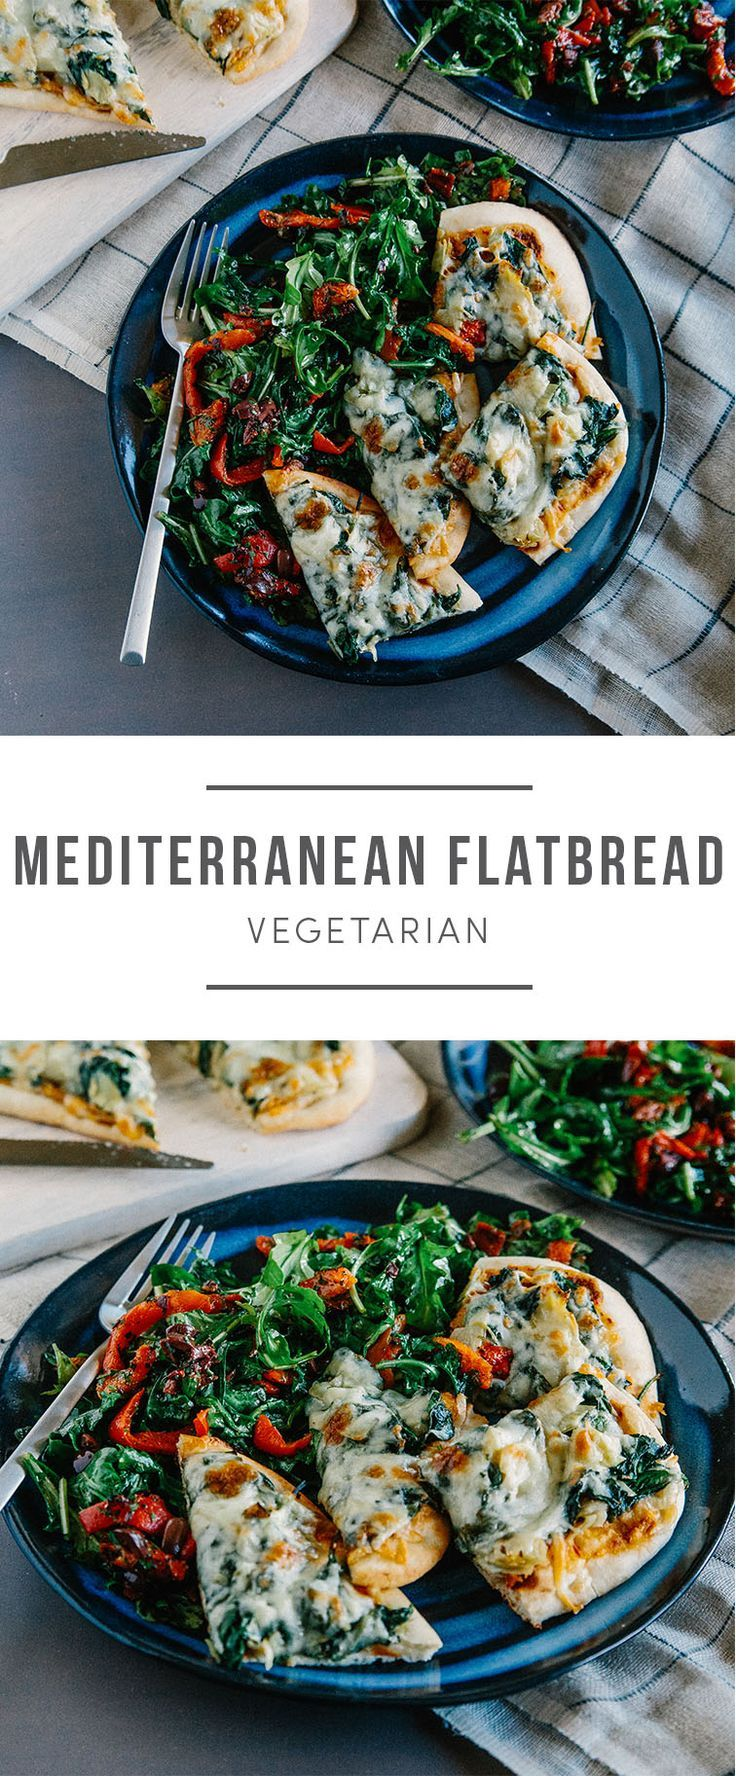 Mediterranean flatbread recipes. Artichokes, spinach, arugula and olives. Recipe here: https://greenchef.com/recipes/spinach-and-artichoke-flatbread-with-red-pepper-peperonata-and-arugula?utm_source=pinterest&utm_medium=link&utm_campaign=social&utm_conten